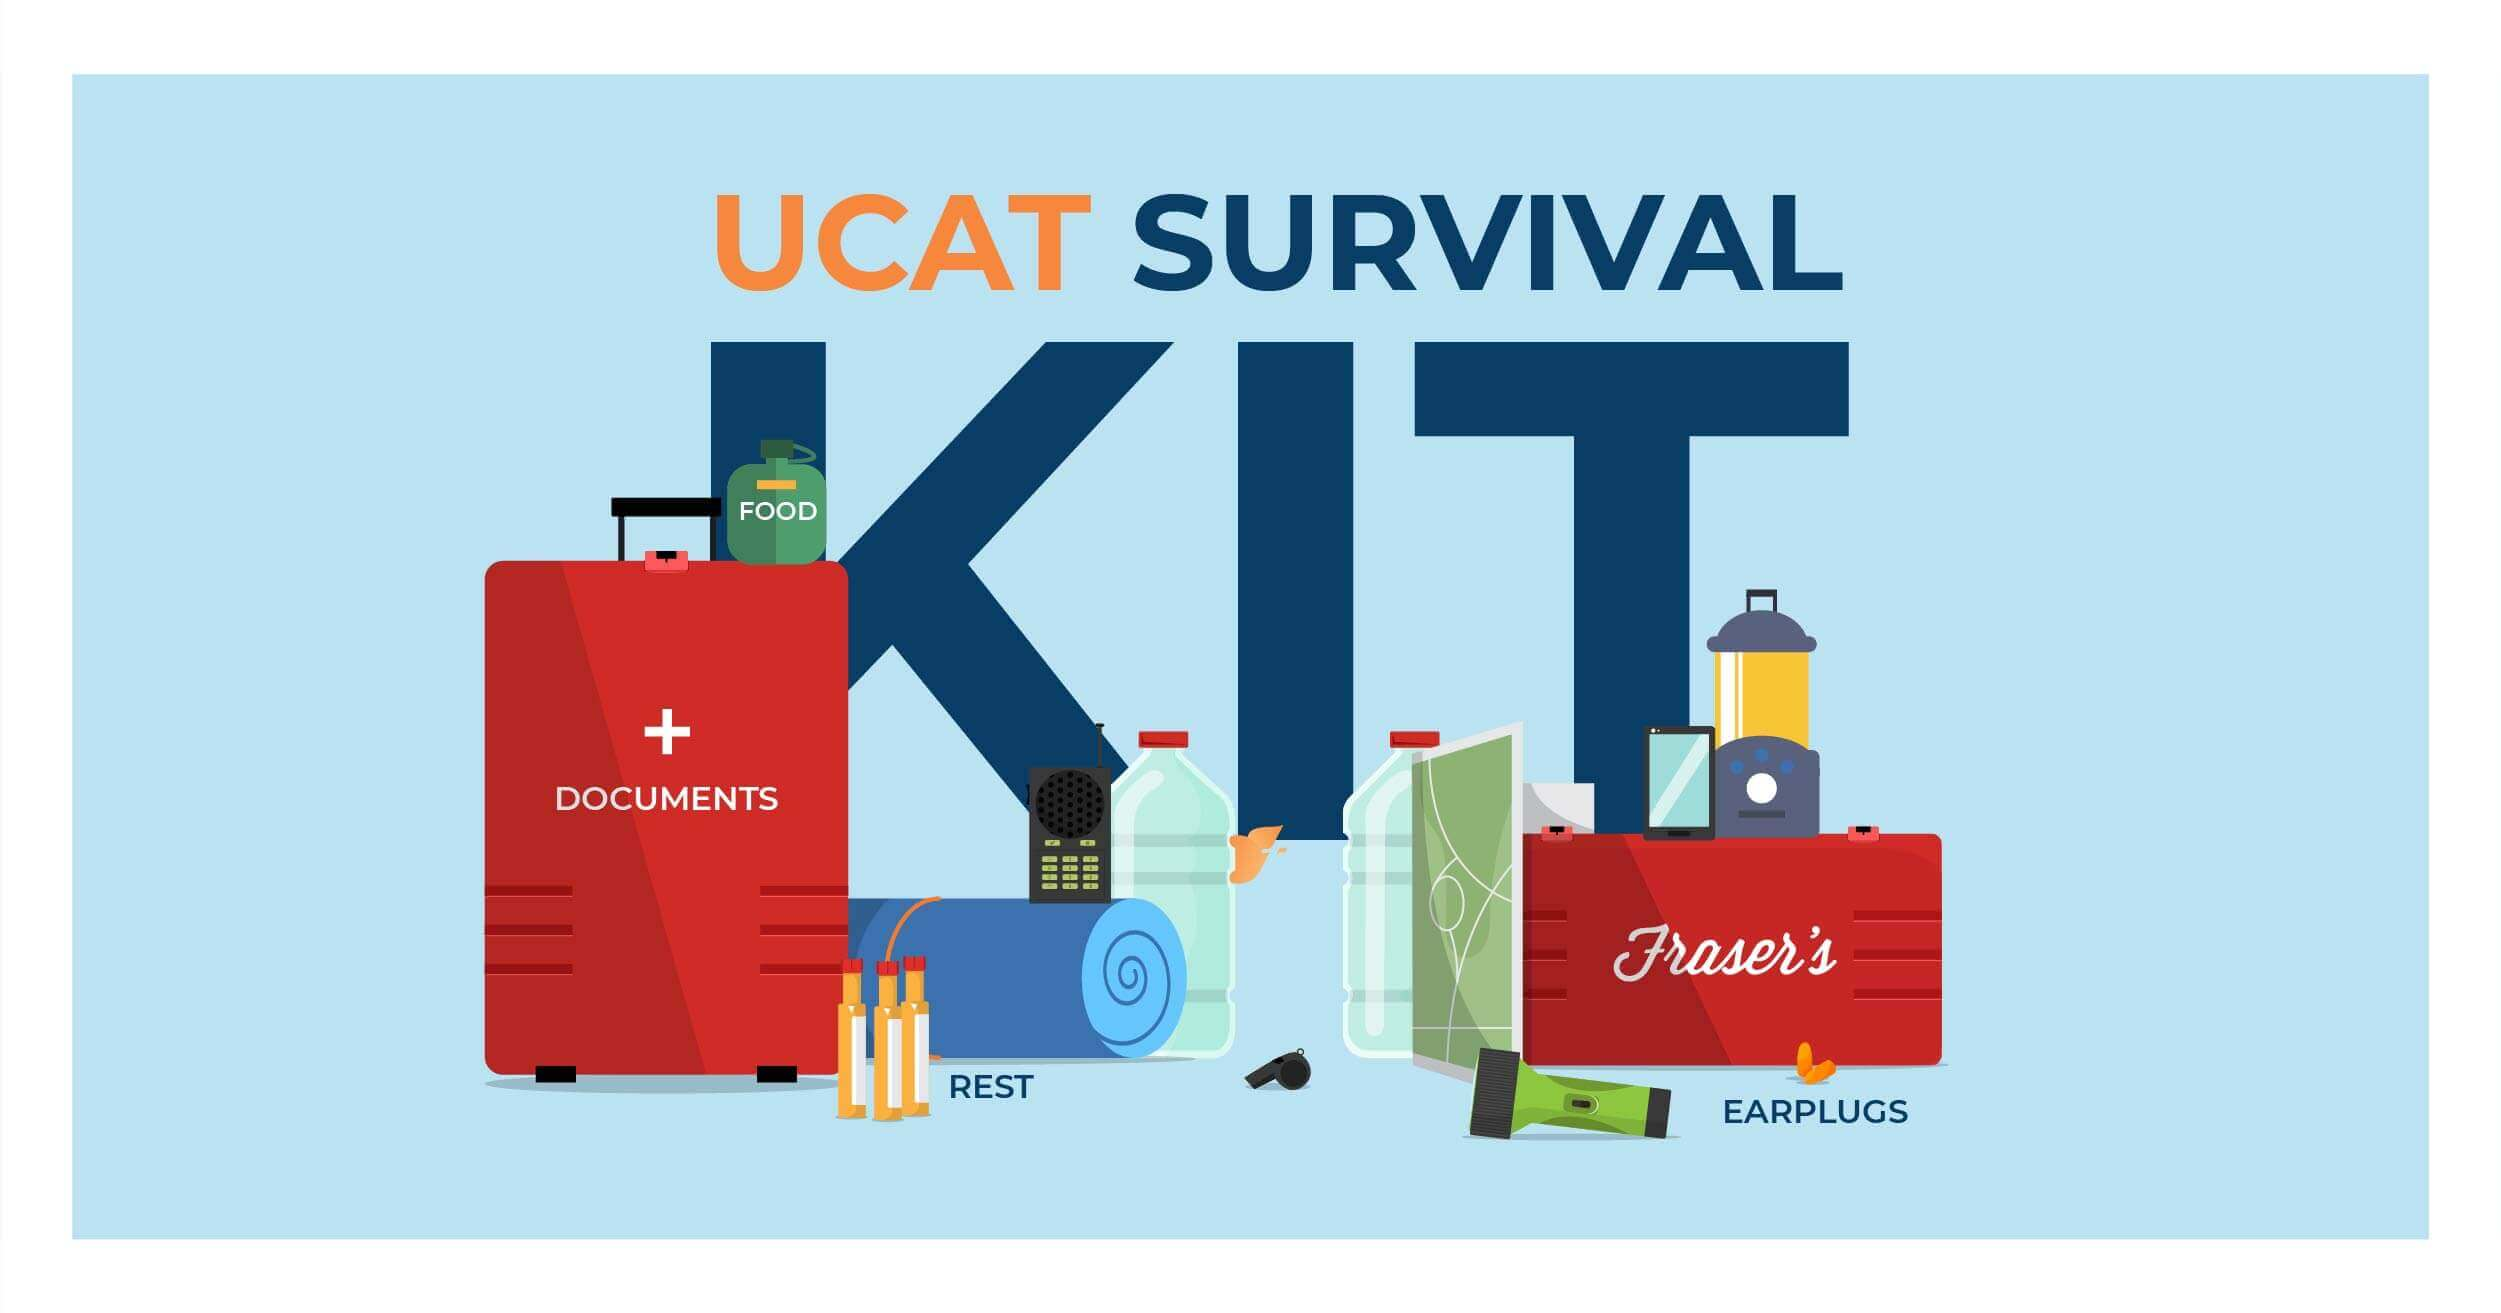 5 Tips On How To Survive The UCAT Test Day featured image